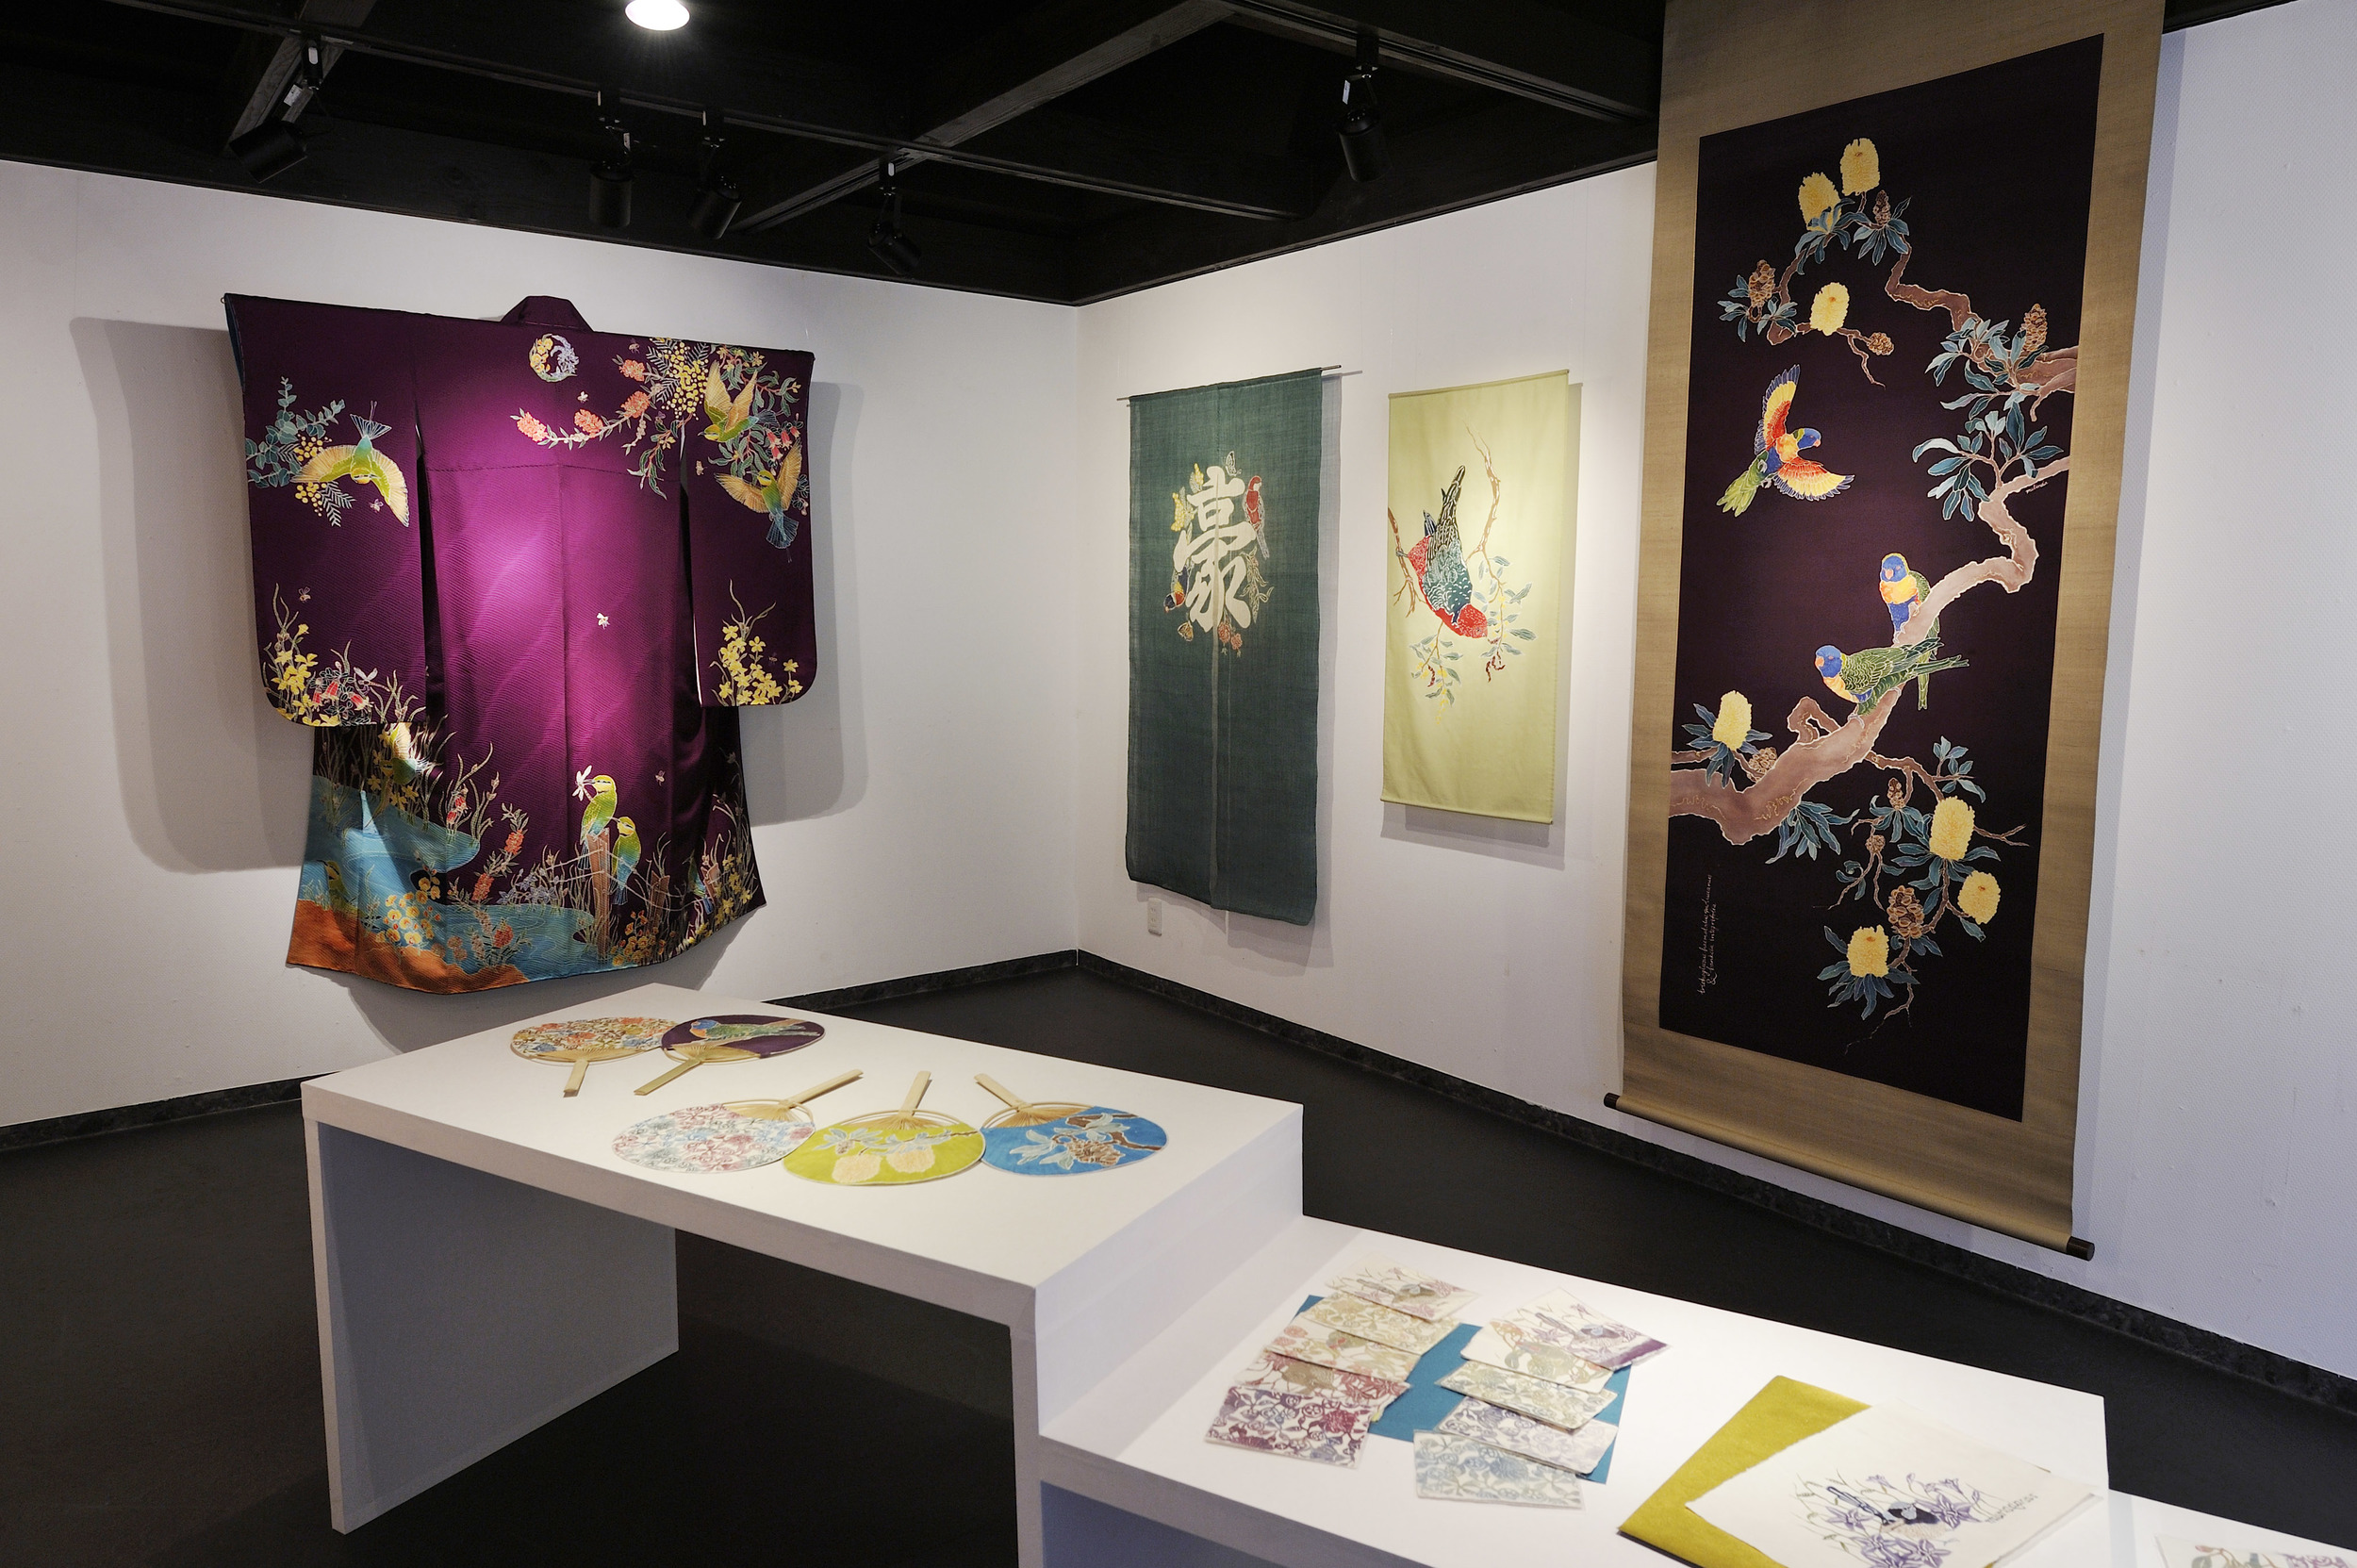 Dyeing Birds & Flowers - Solo Show 2013